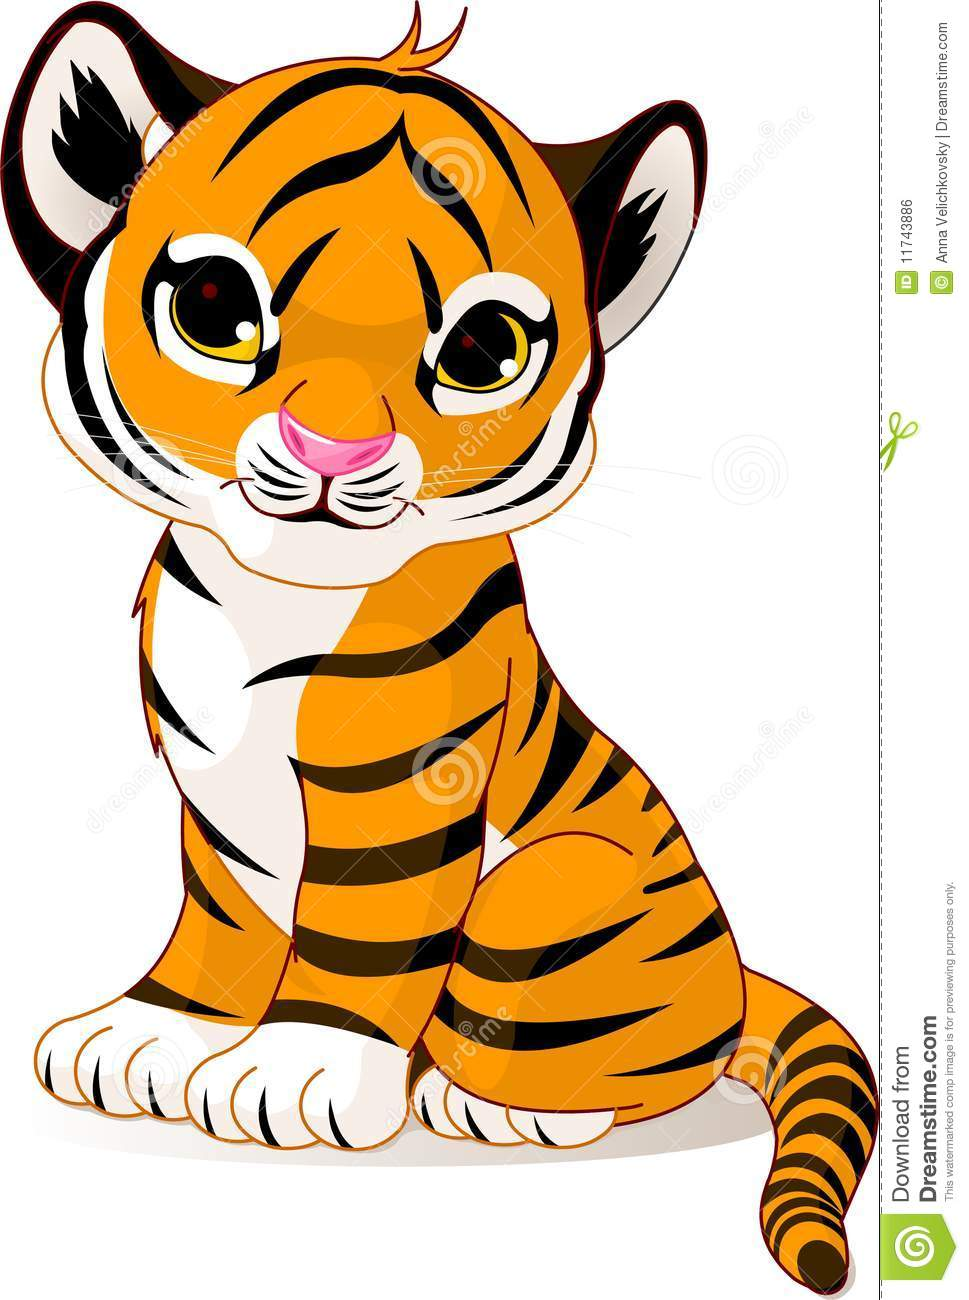 Cute tiger clipart 3 » Clipart Station.